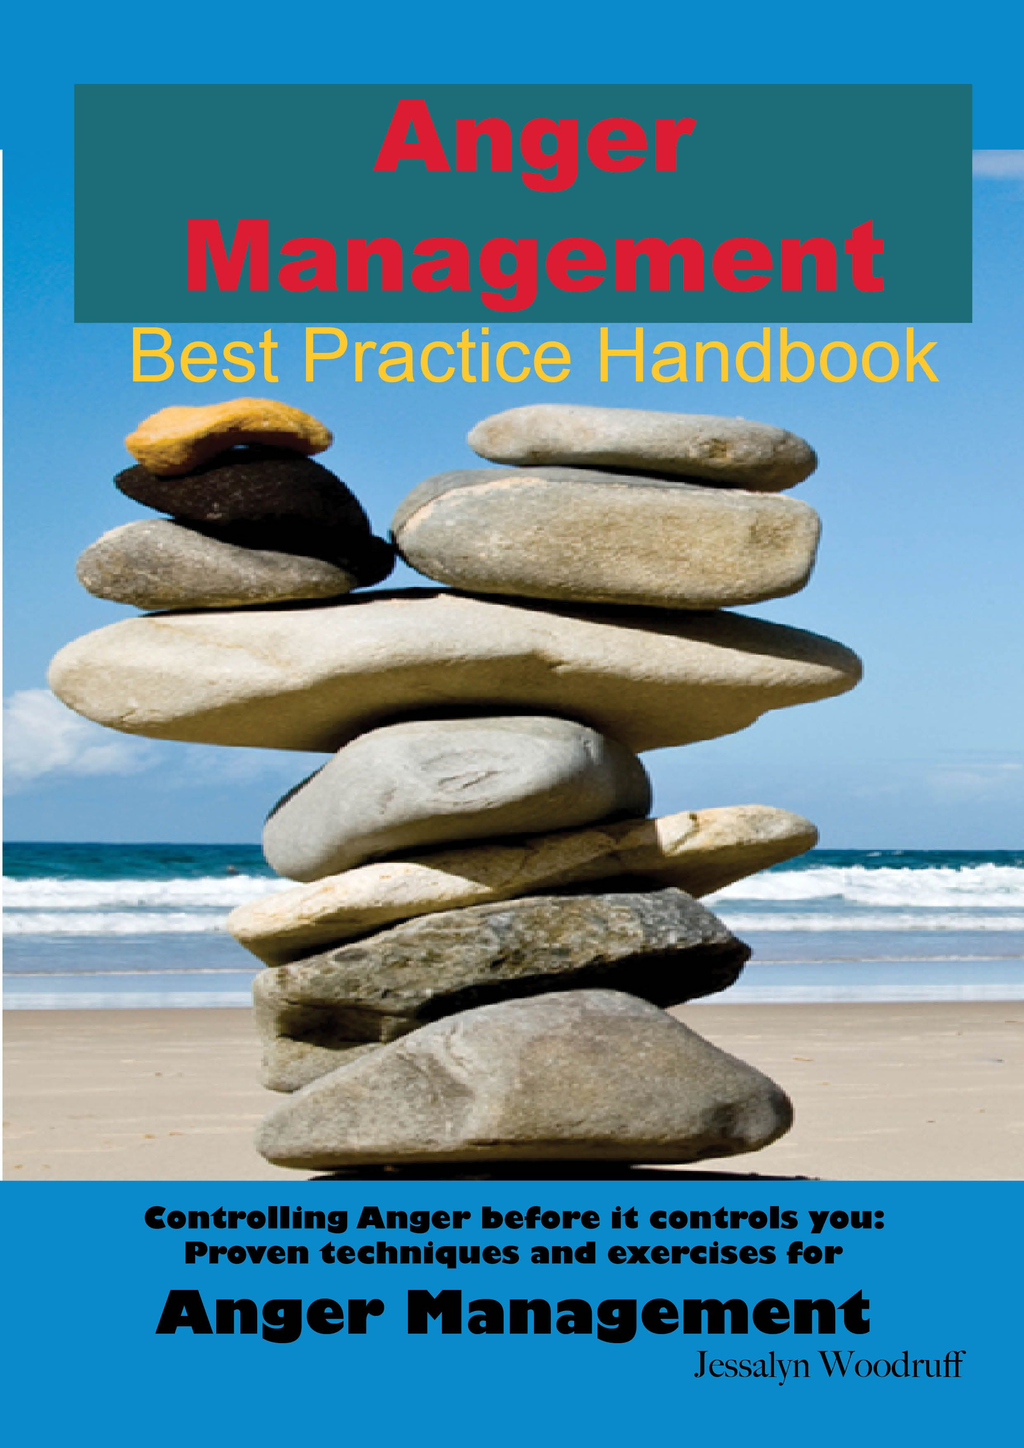 Anger Management Best Practice Handbook: Controlling Anger Before it Controls You, Proven Techniques and Exercises for Anger Management - Second Edition